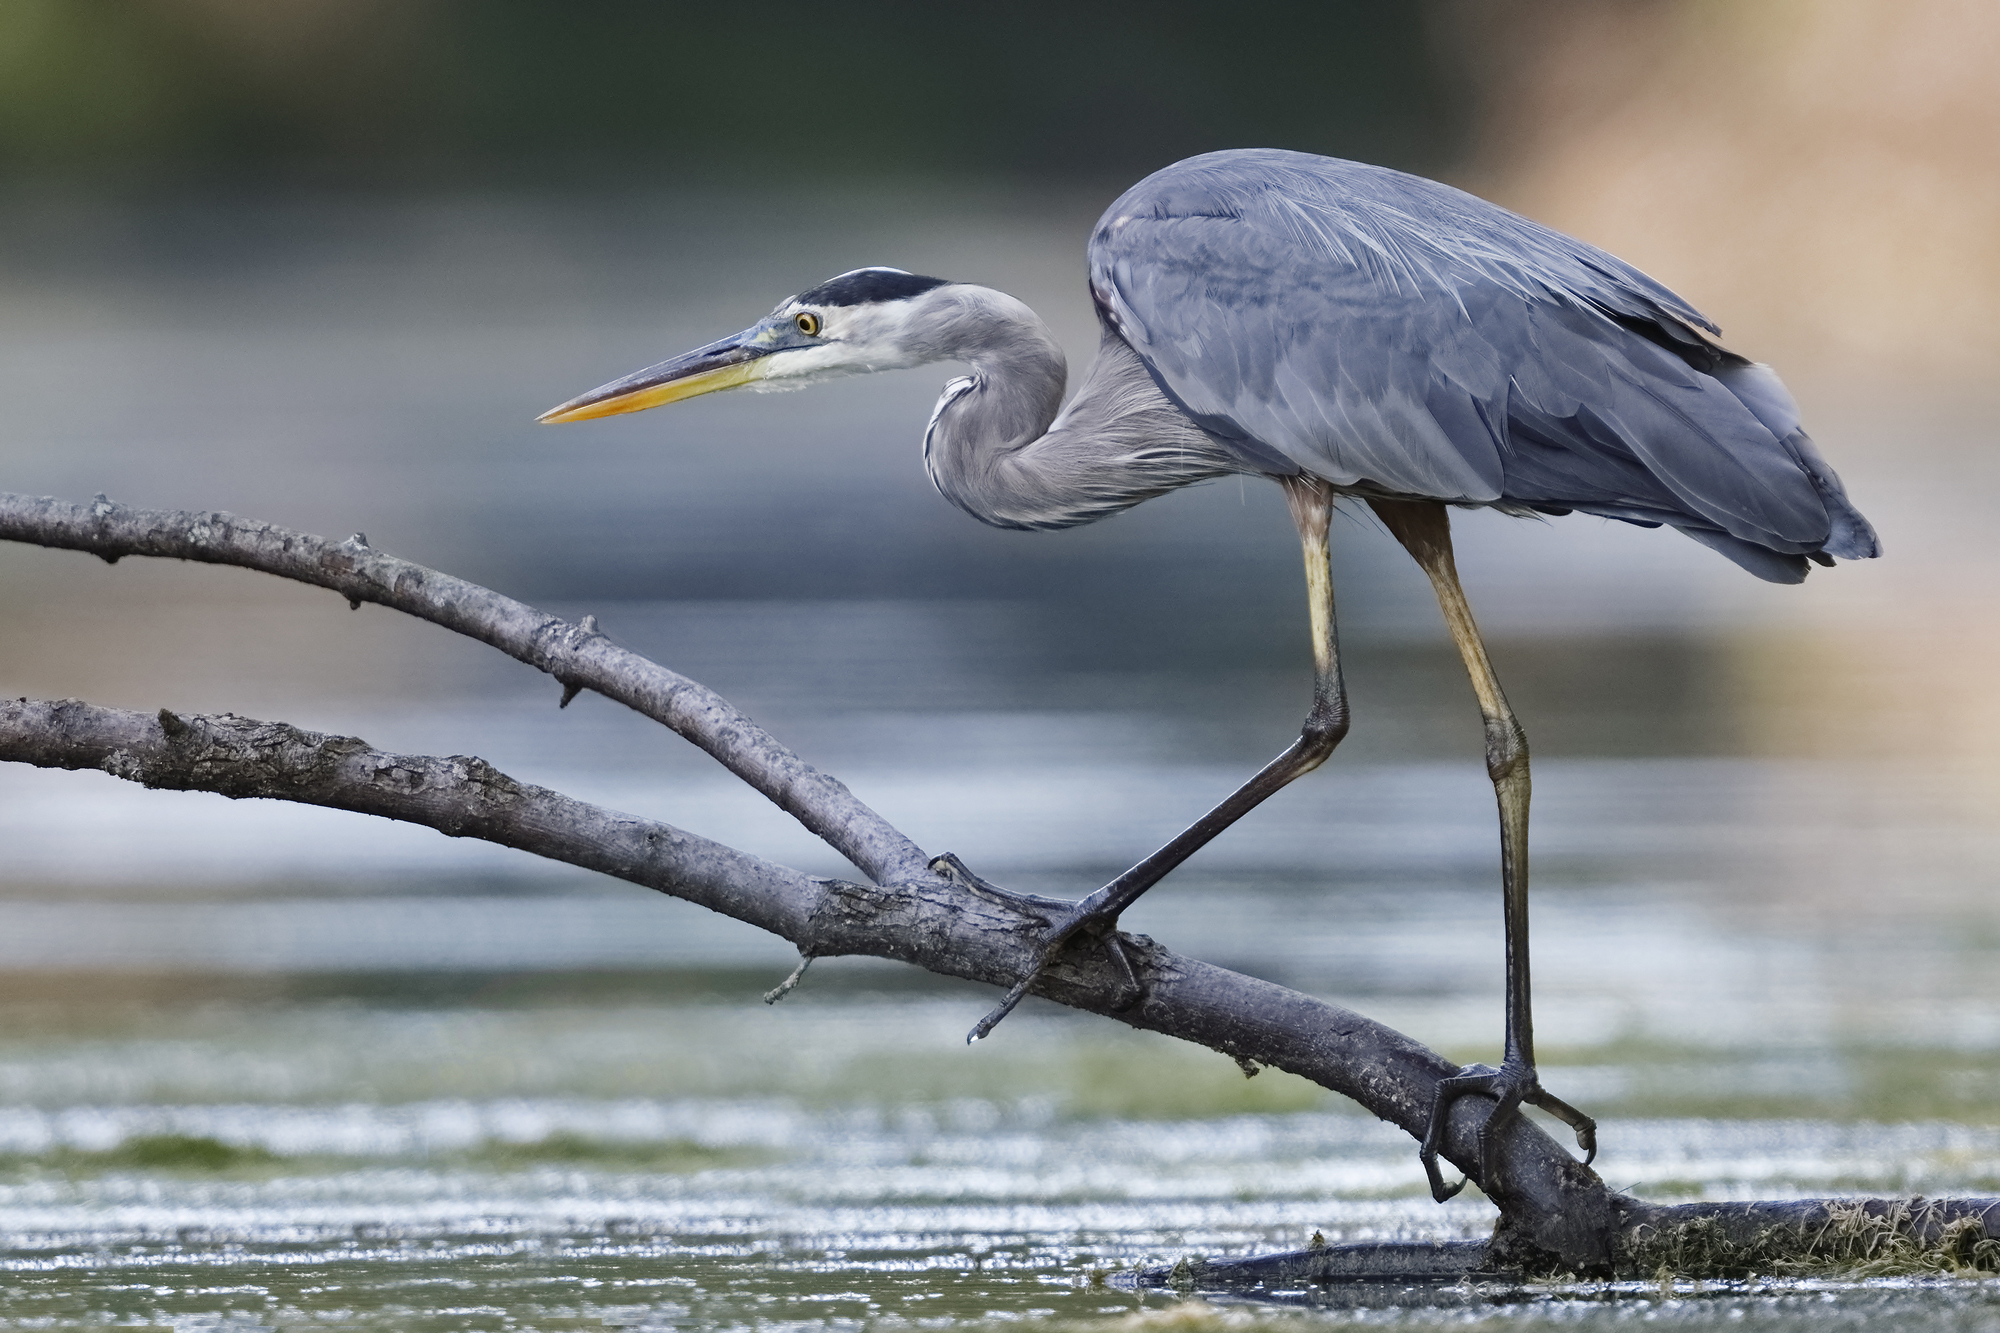 Great Blue Heron - (Ardea herodius) is one of the most common birds in the Florida Everglades